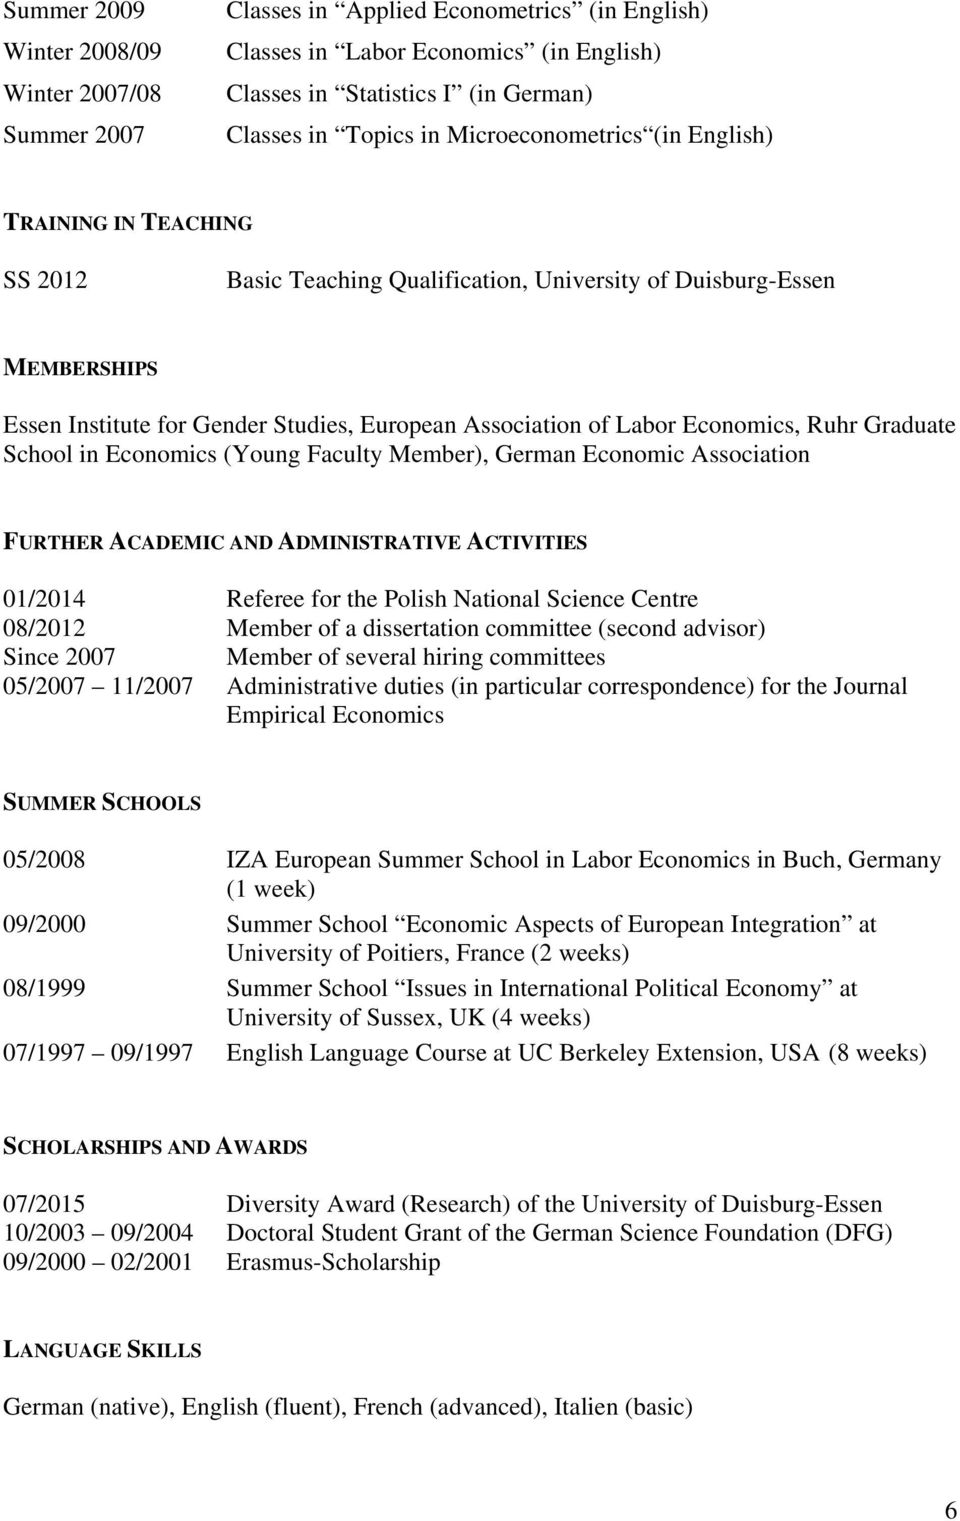 Economics, Ruhr Graduate School in Economics (Young Faculty Member), German Economic Association FURTHER ACADEMIC AND ADMINISTRATIVE ACTIVITIES 01/2014 Referee for the Polish National Science Centre